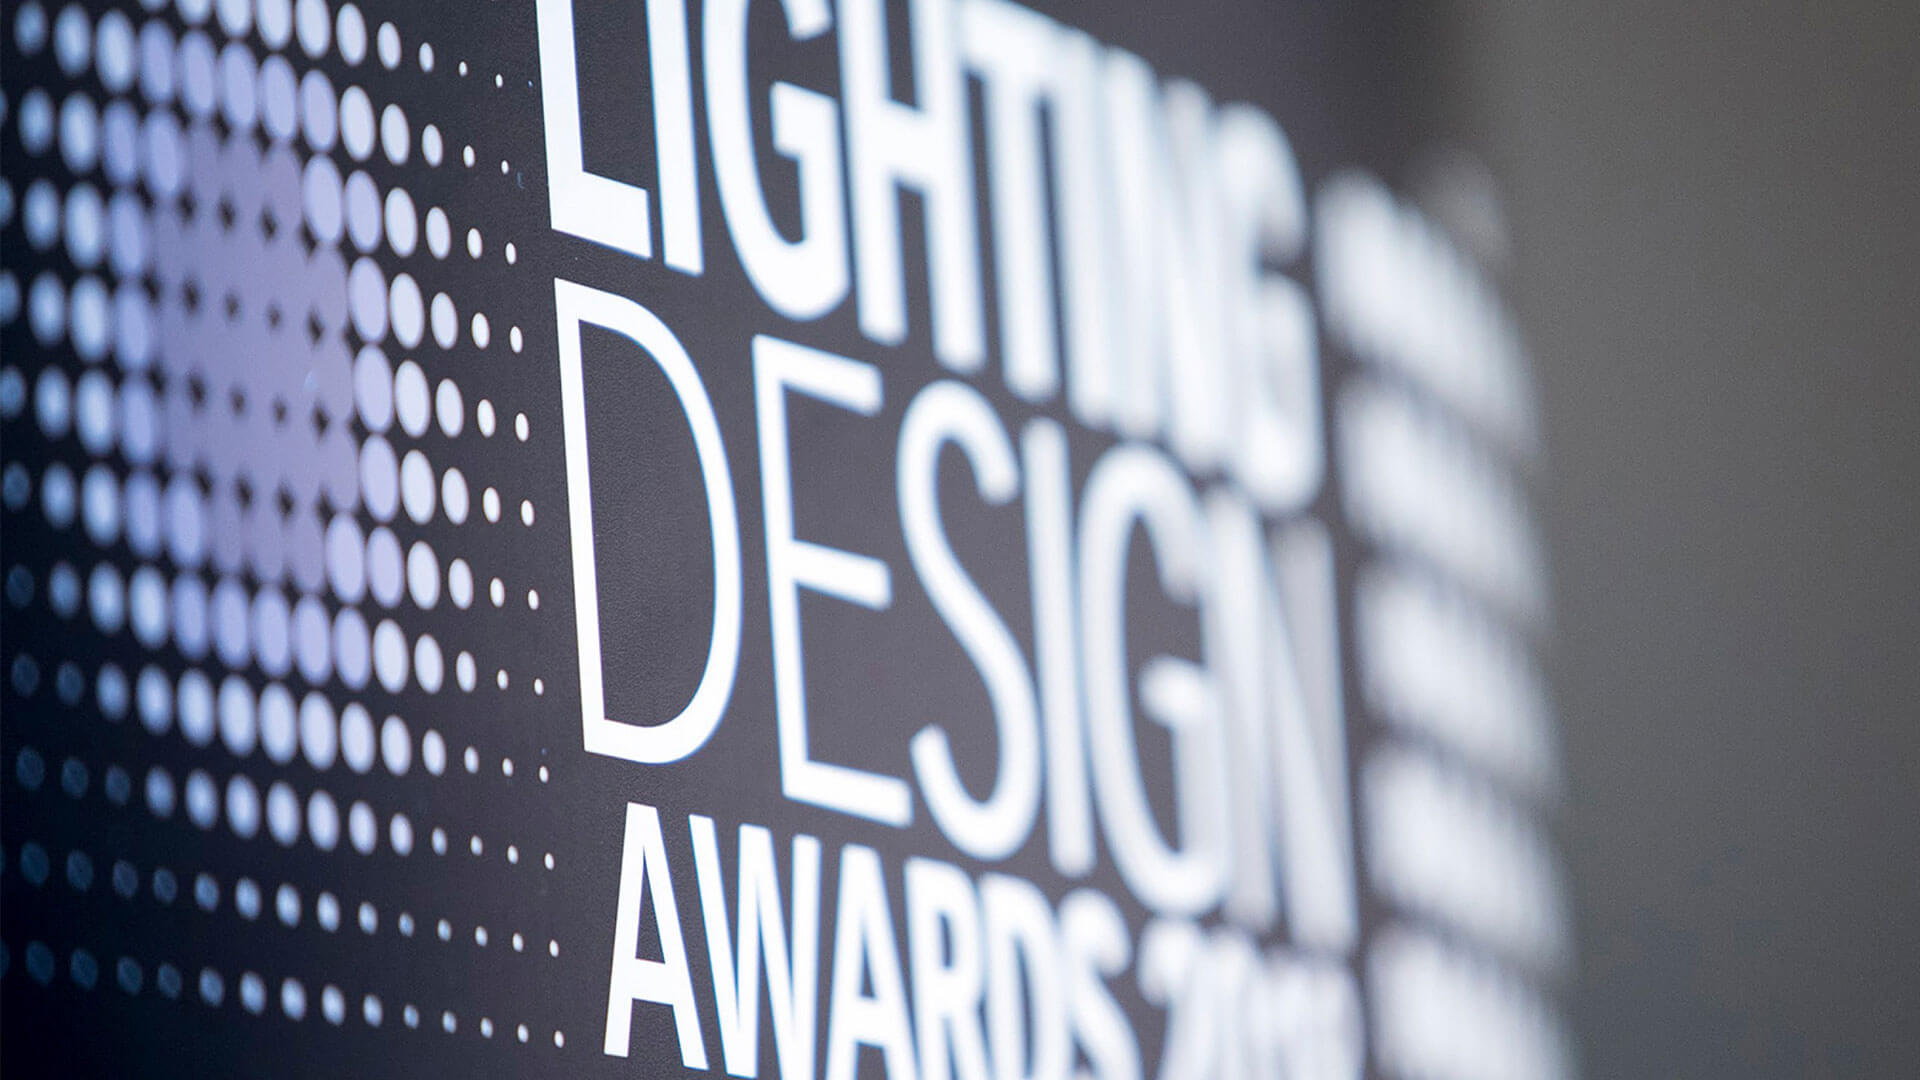 Lighting design award